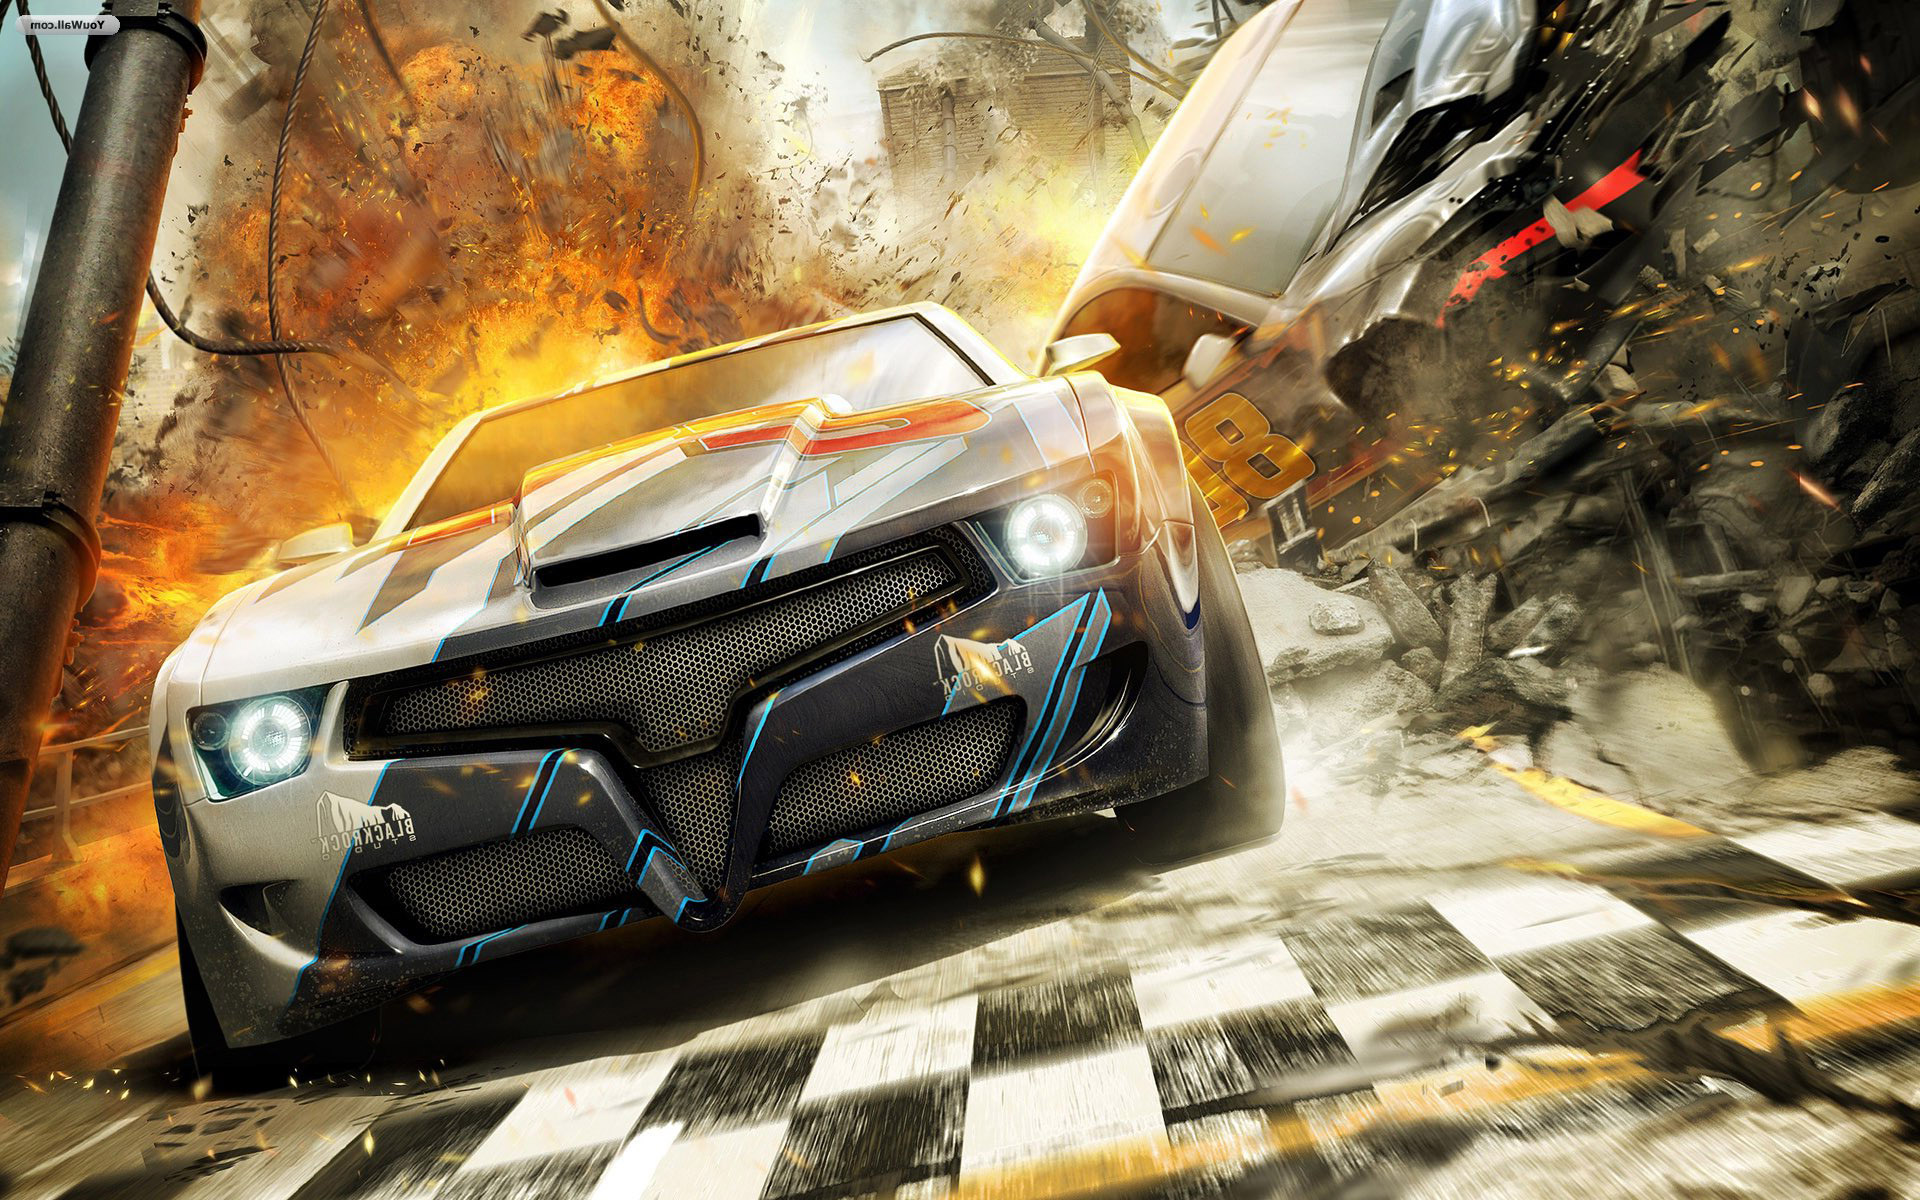 3d Games Hd Wallpaper For Mobile: Cool Gaming Wallpapers